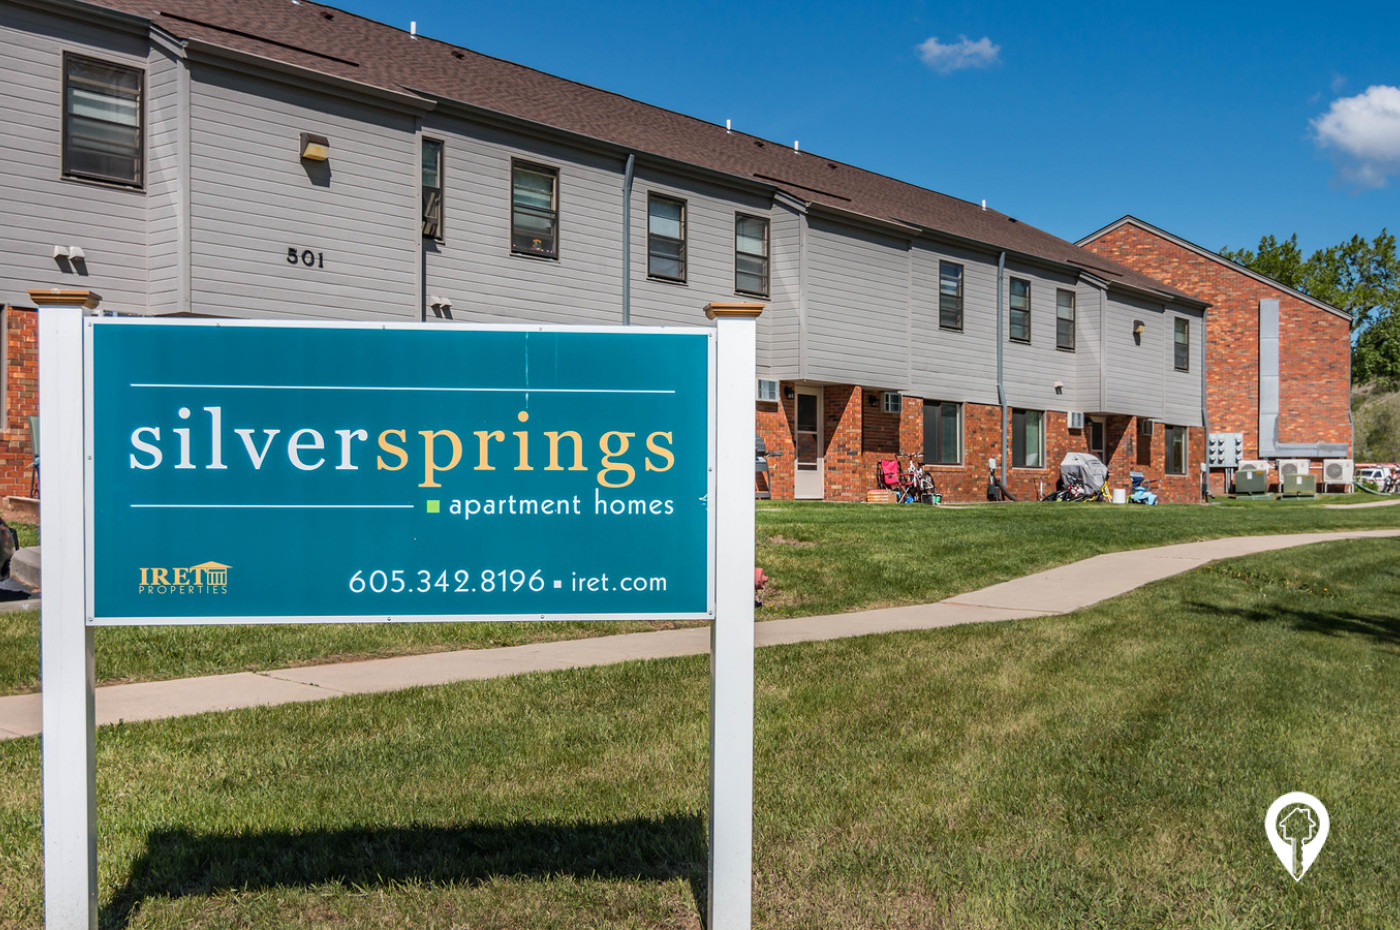 IRET Apartments - Silver Springs Apartment Homes